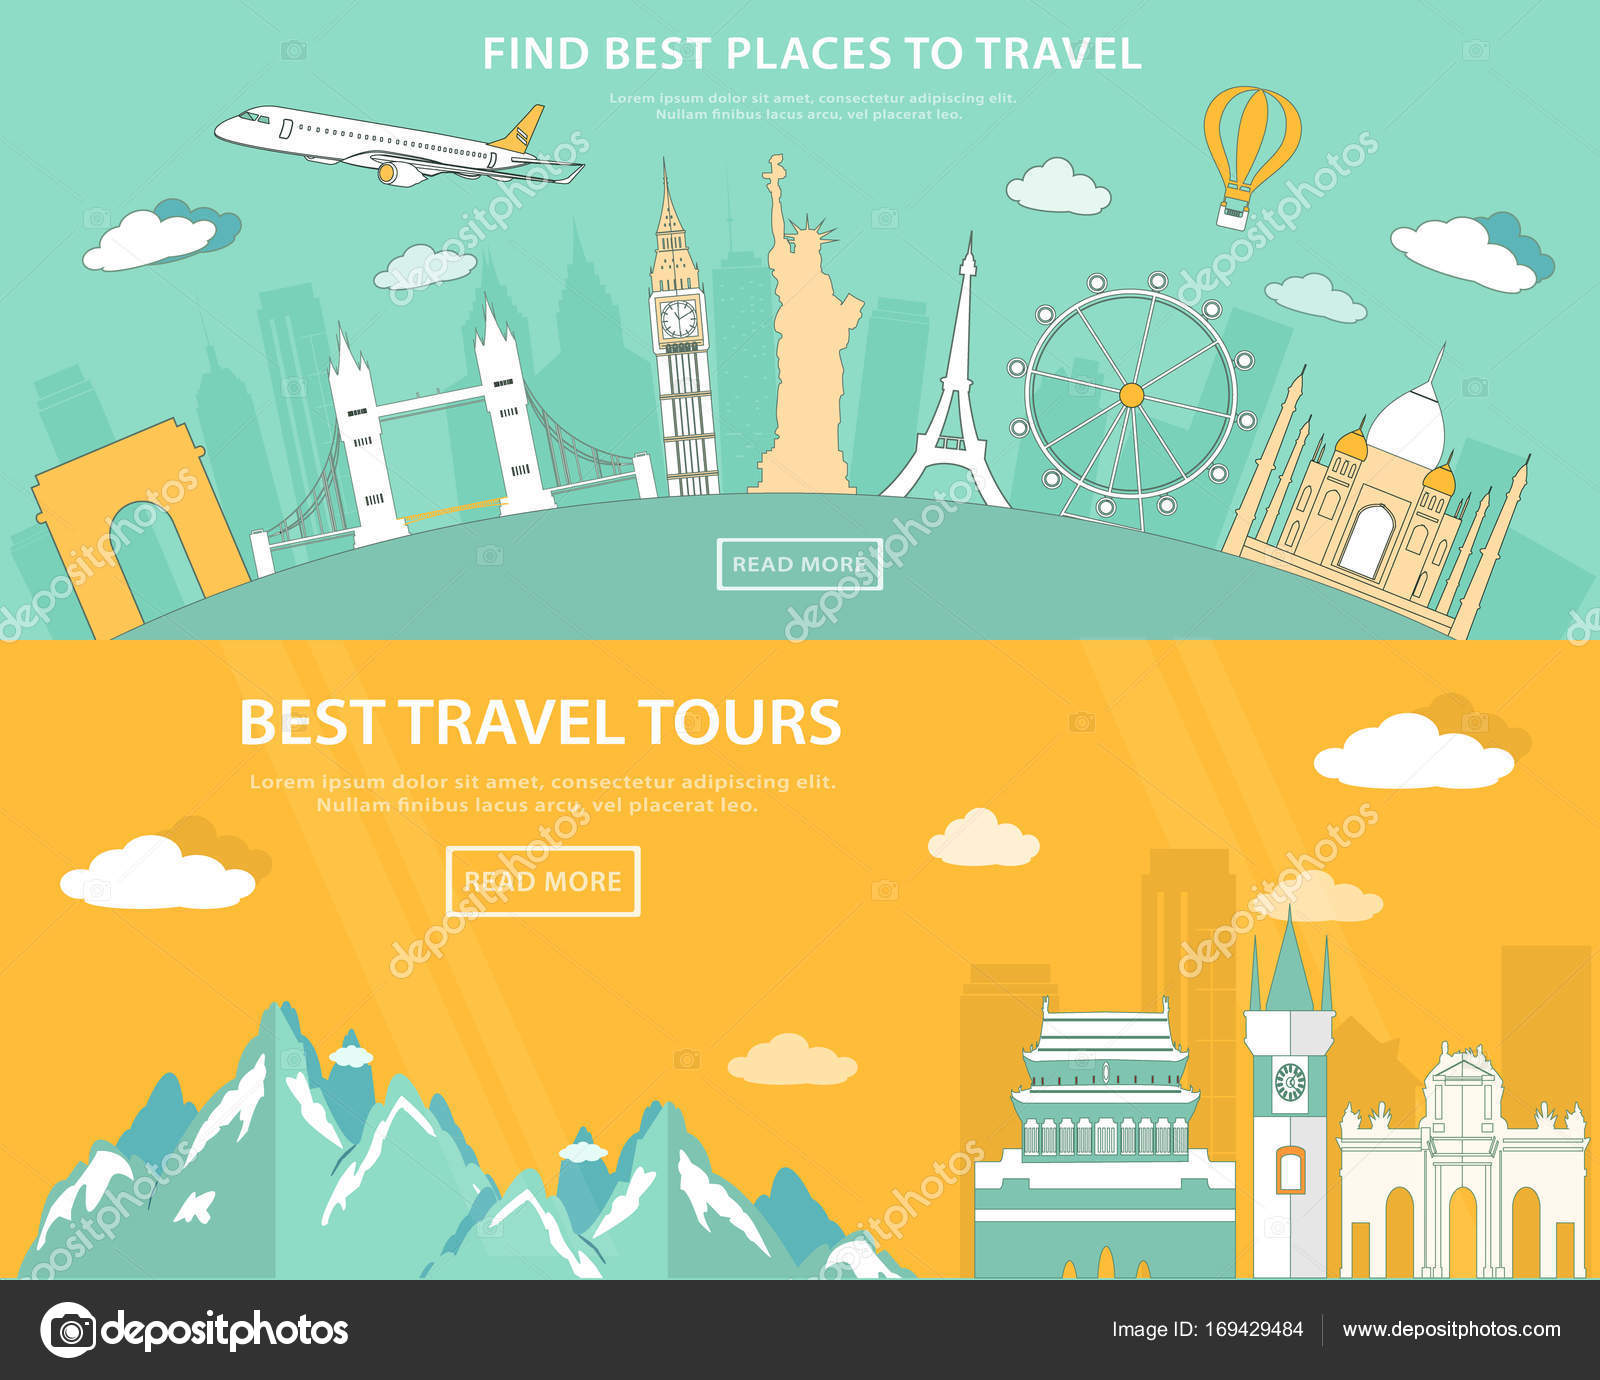 Flat Design Illustration Concepts For Travelling And Tourism Web Banner With Set Of World Landmarks And Places To Travel Stock Vector C Marisa 169429484